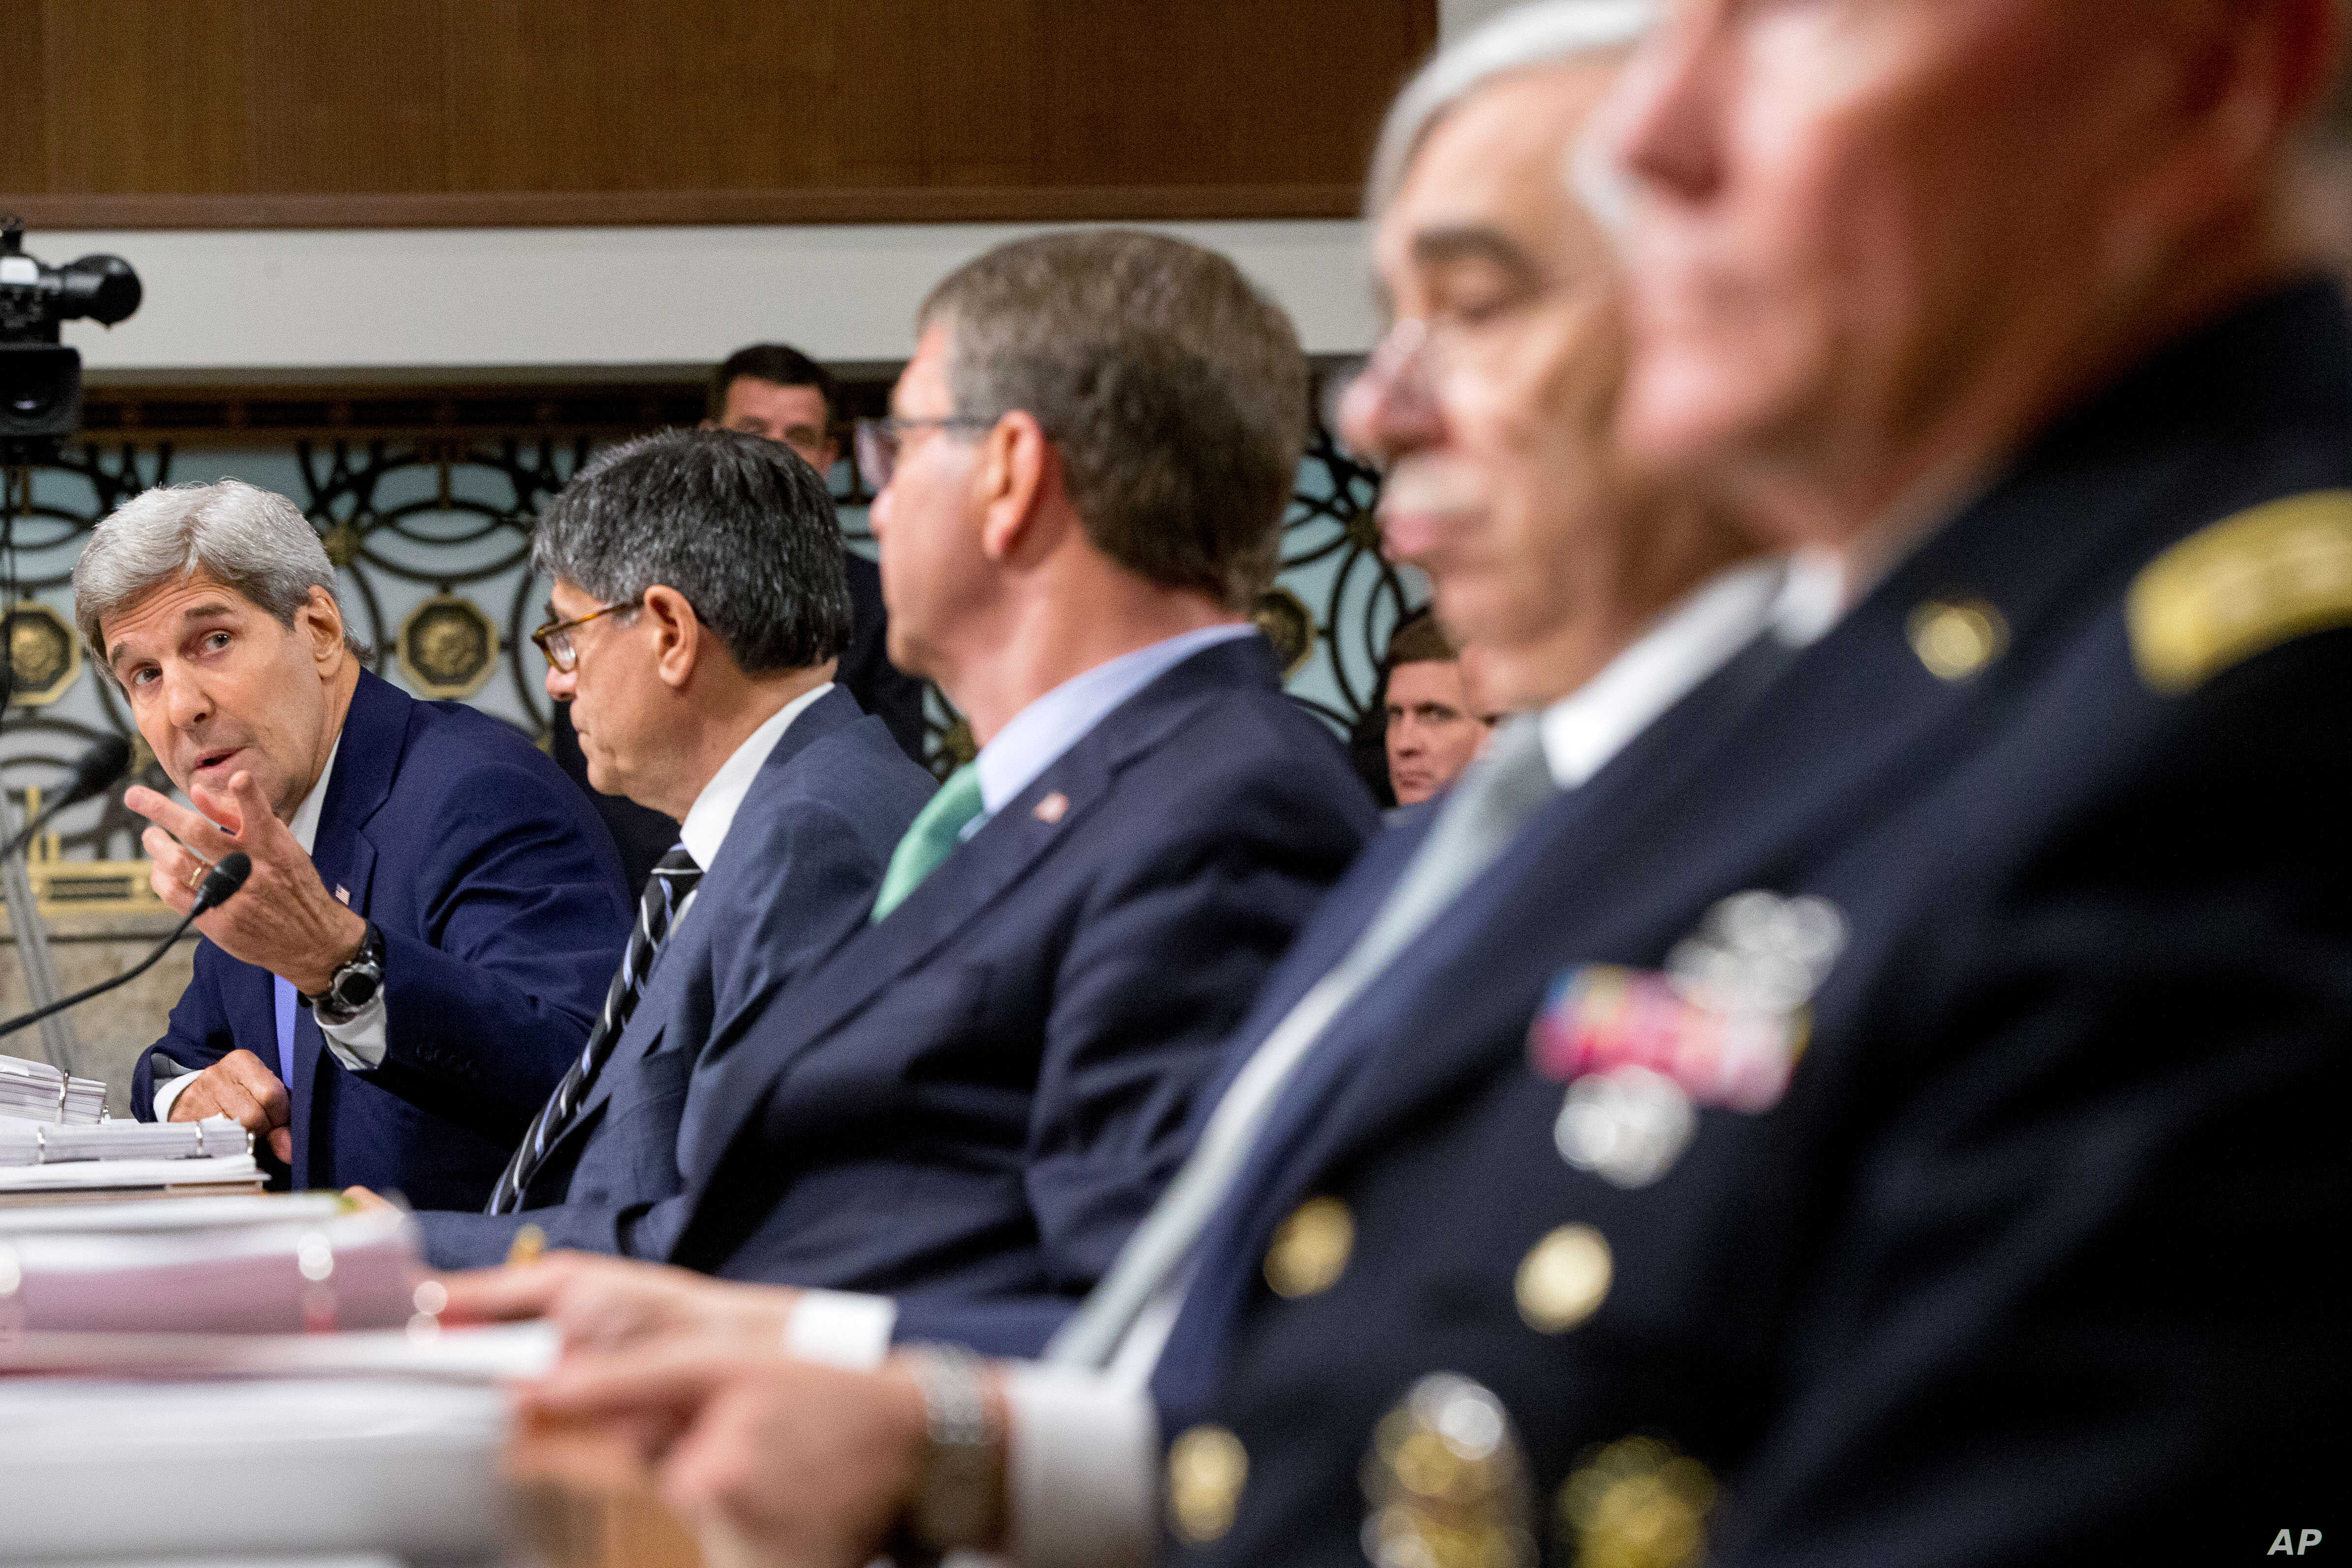 From left, Secretary of State John Kerry, Treasury Secretary Jacob Lew, Defense Secretary Ash Carter, Energy Secretary Ernest Moniz and Joint Chiefs Chairman Gen. Martin Dempsey testify on Capitol Hill in Washington, July 29, 2015.